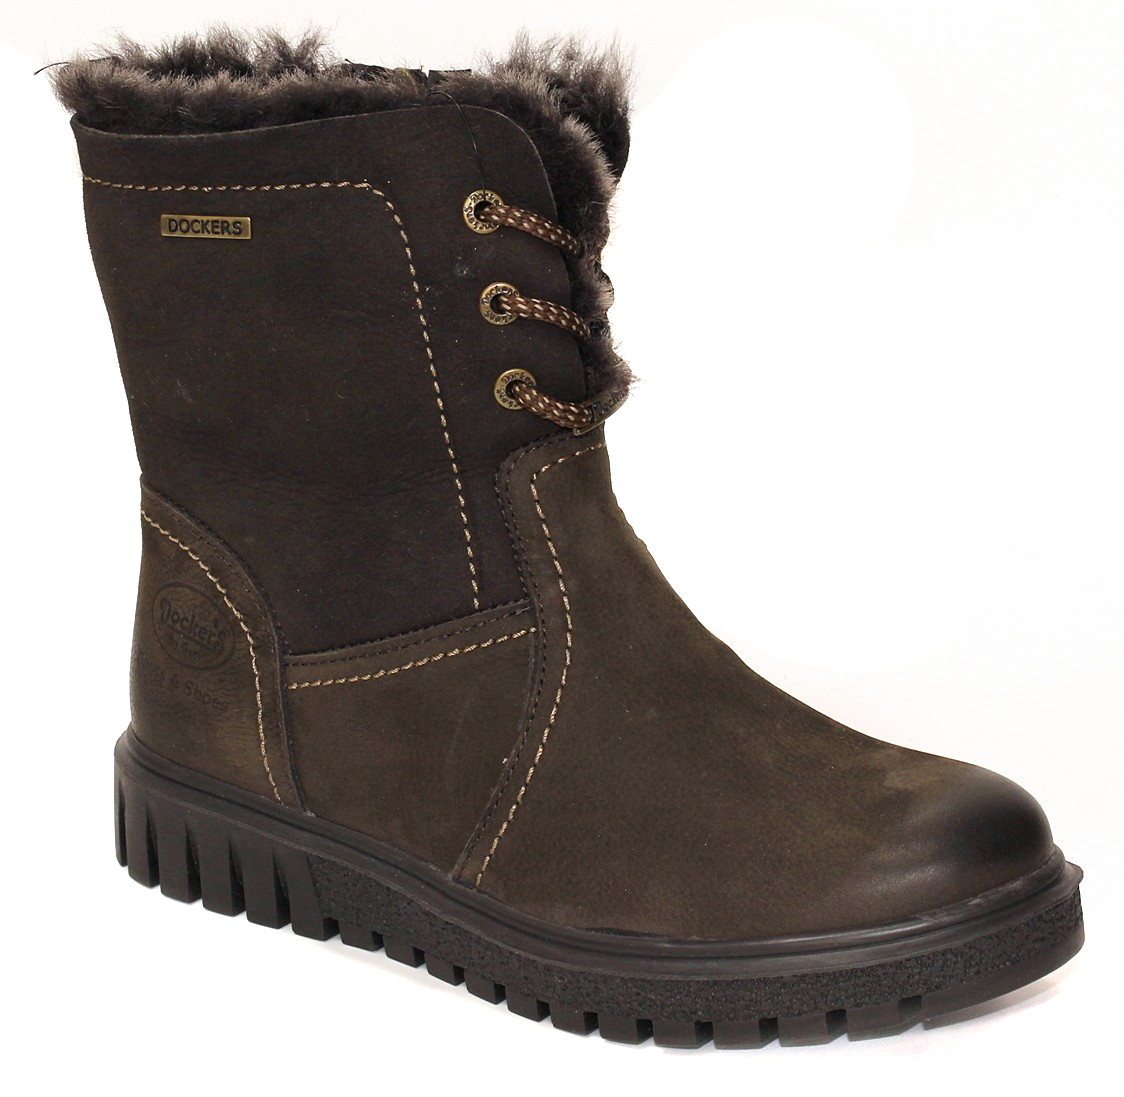 Полусапоги DOCKERS 881201 brown